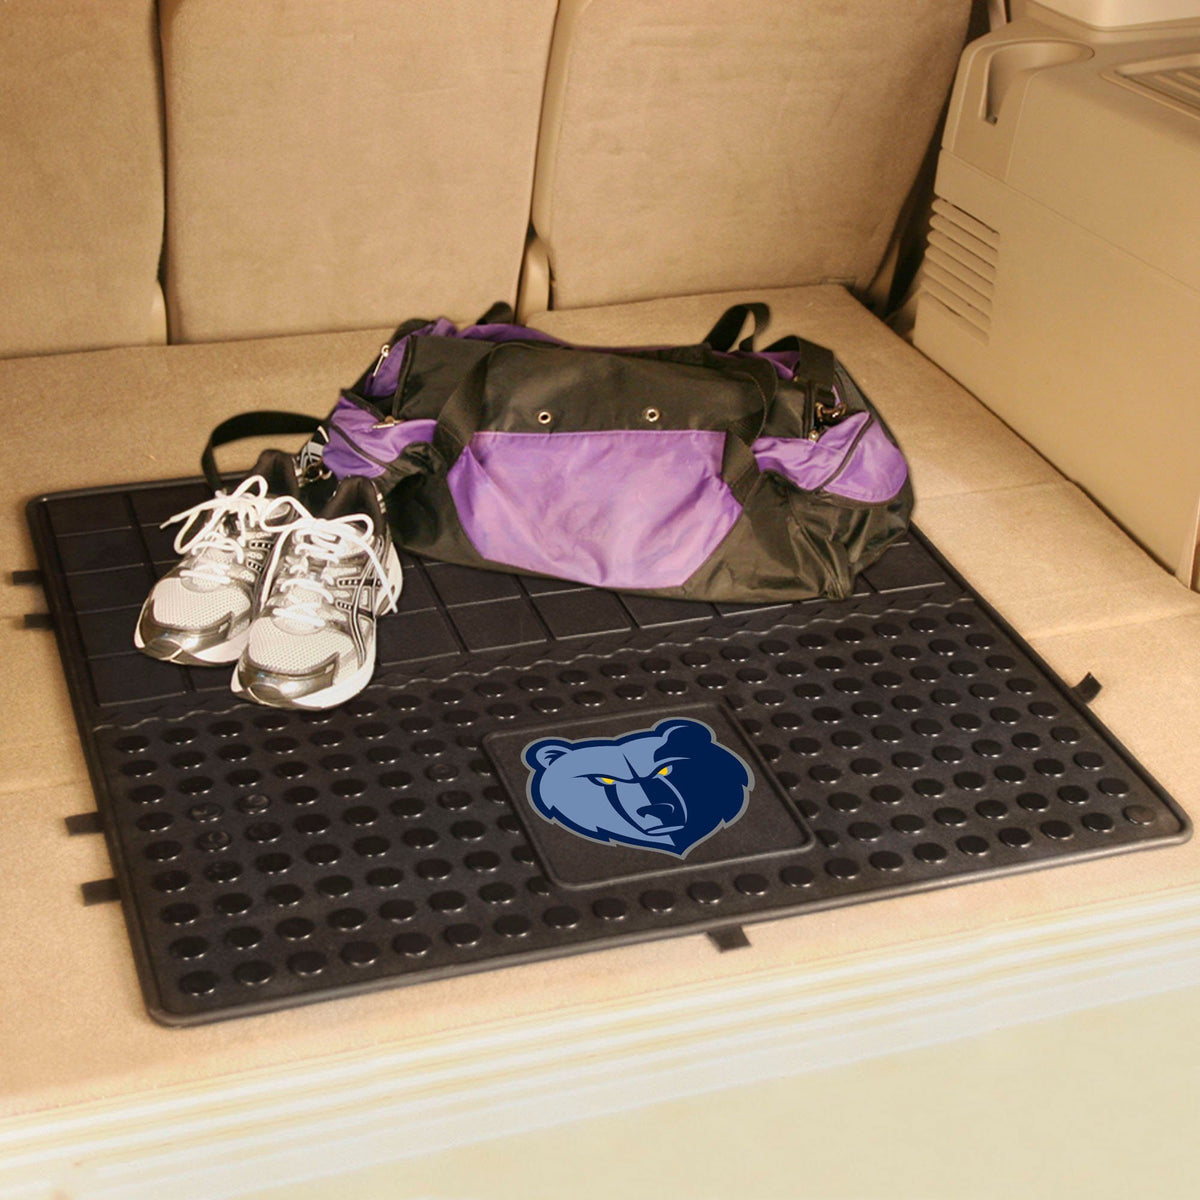 NBA - Heavy Duty Vinyl Cargo Mat NBA Mats, Trunk Mats, Heavy Duty Vinyl Cargo Mat, NBA, Auto Fan Mats Memphis Grizzlies